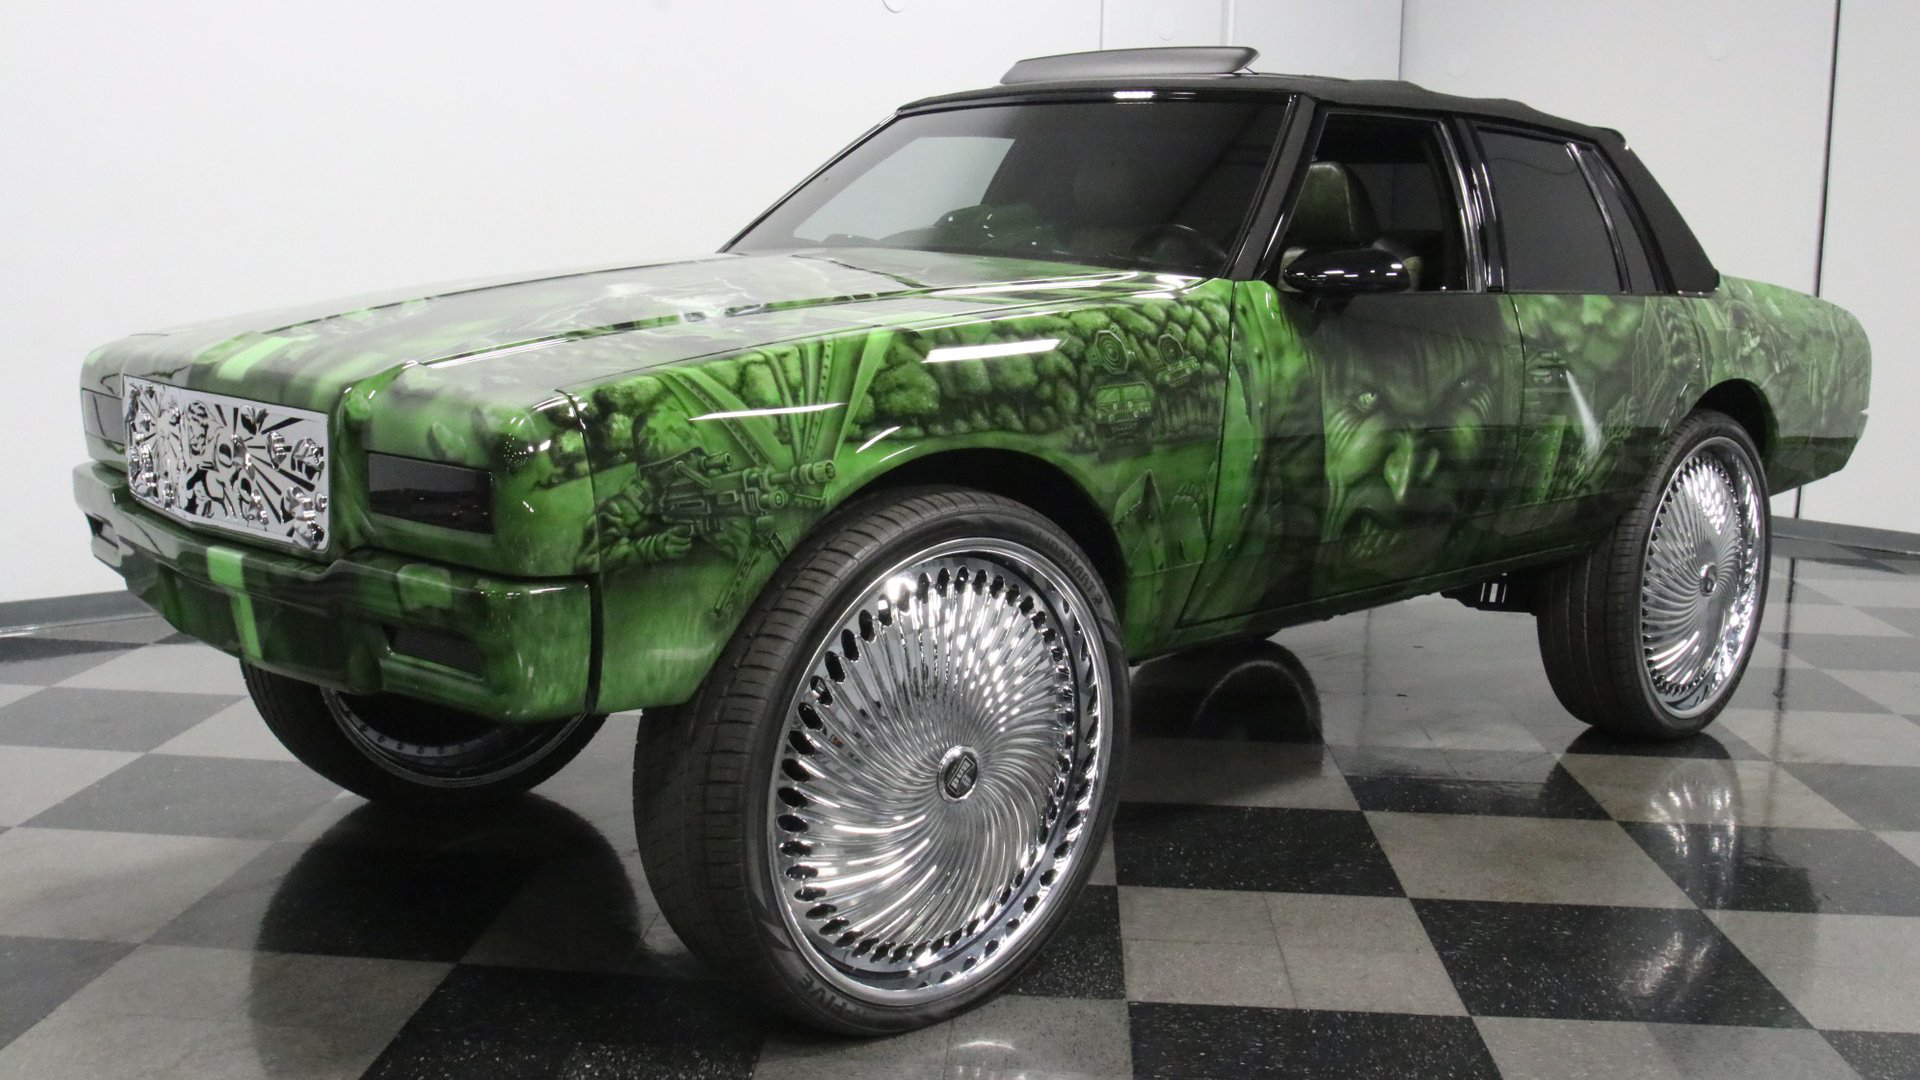 Streetside Classic is offering a very special lot on its website: a Chevrolet Caprice themed after The Hulk. The asking price of $40,000 may seem like much, but Spade Kreations – which was responsible for the build – claims that the paintjob alone cost that much back in 1989.